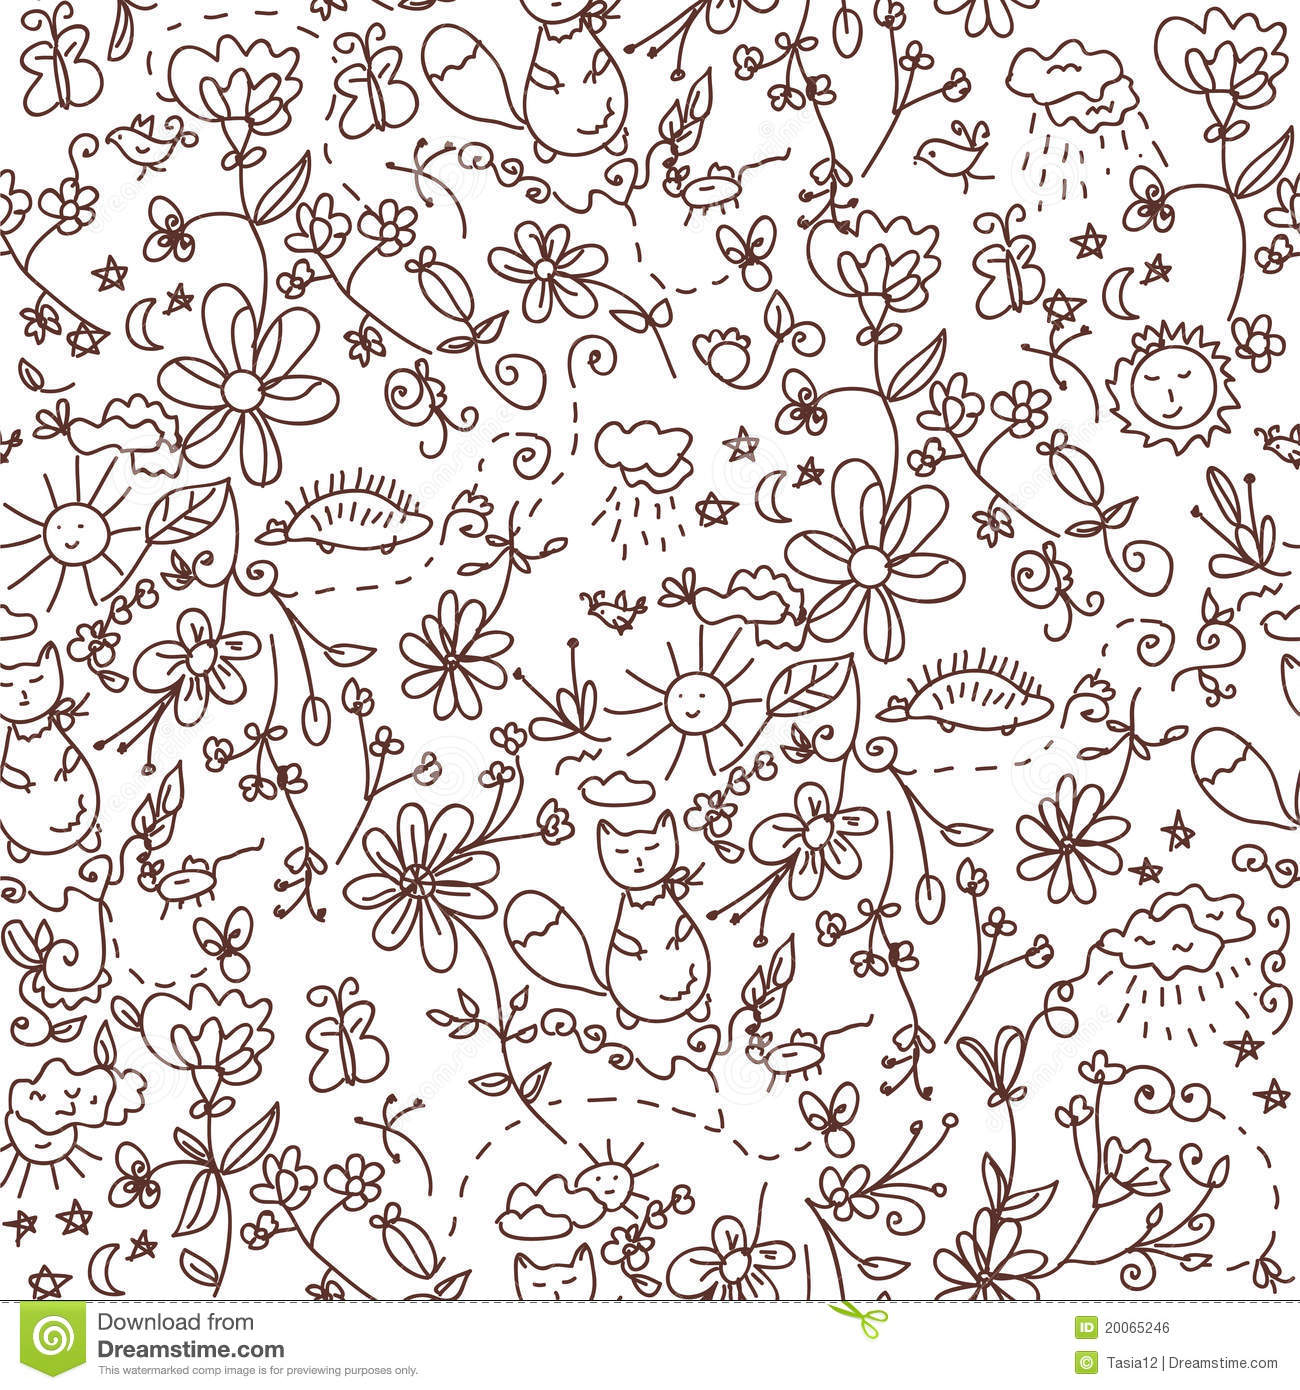 nature seamless doodle royalty free stock image image